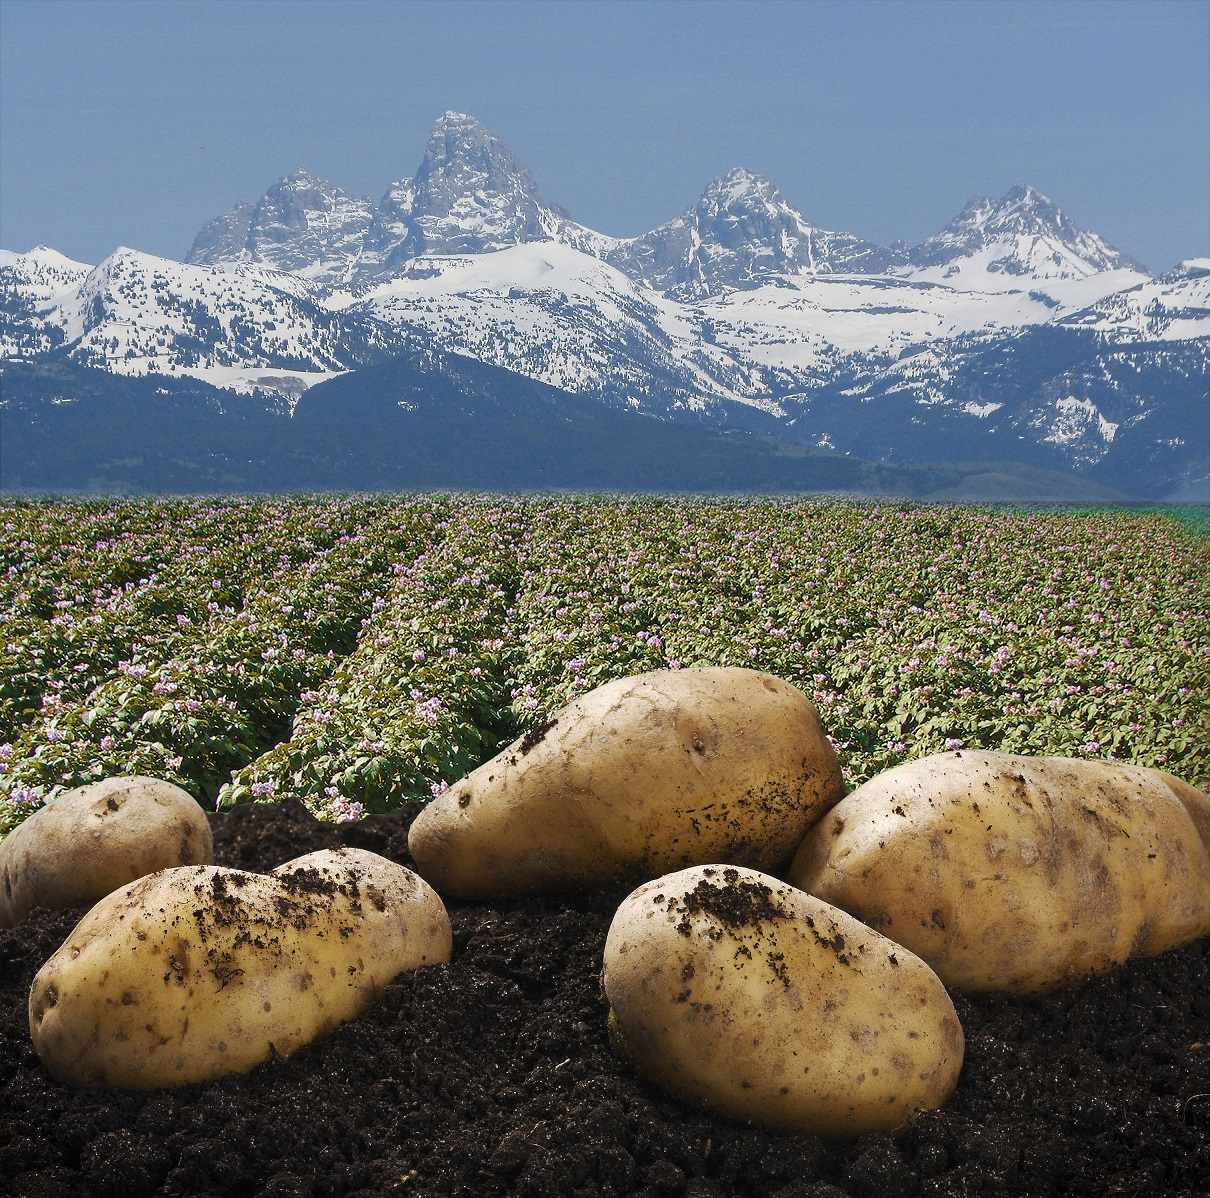 High-quality early generation U.S. Potato Seeds.   Providing varieties that are disease resistant, that produce high yields, and are suitable for post harvest processing and transformation.